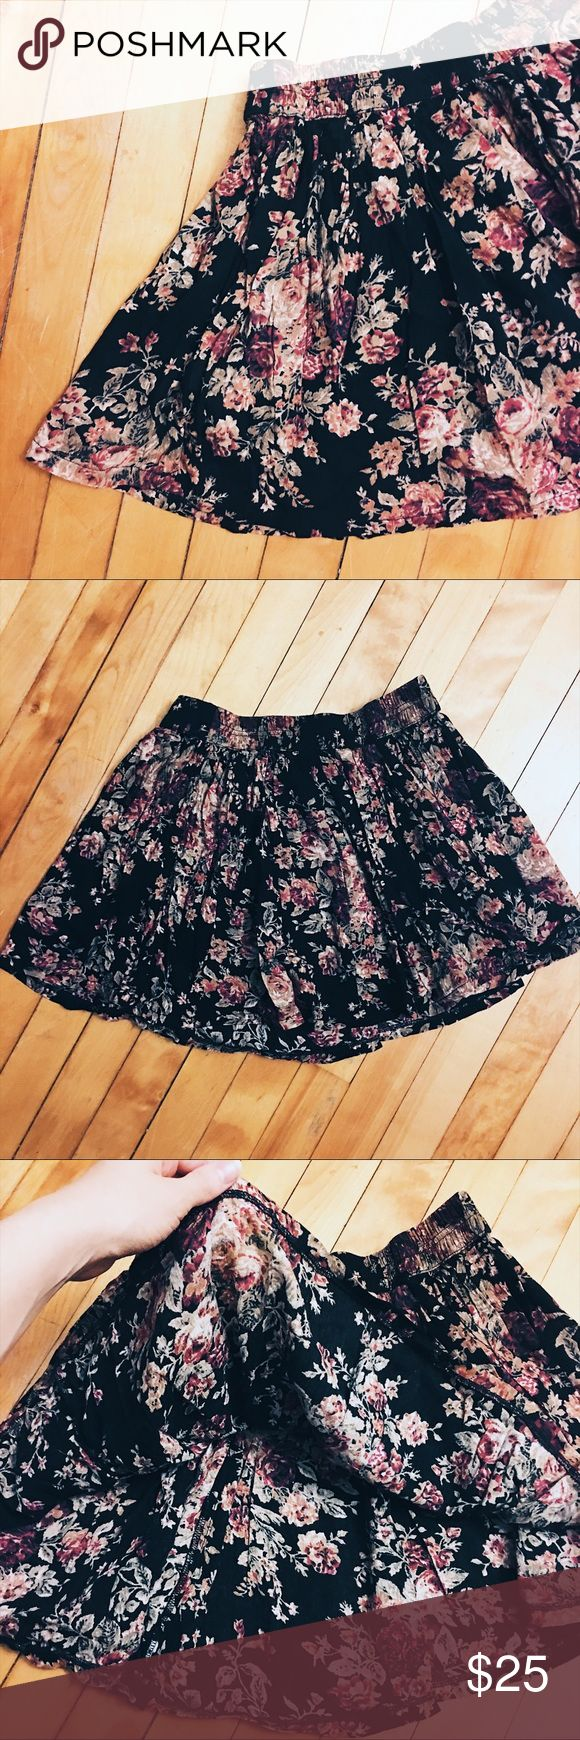 Black Floral Skater Skirt Great condition! Black and floral skater/circle skirt from Denim & Supply - Ralph Lauren. Size small. Includes a synched waist for the perfect fit. Loose and flowy on the bottom. Has a very vintage feel to it. Perfect for summer! 🌸 Denim & Supply Ralph Lauren Skirts Circle & Skater